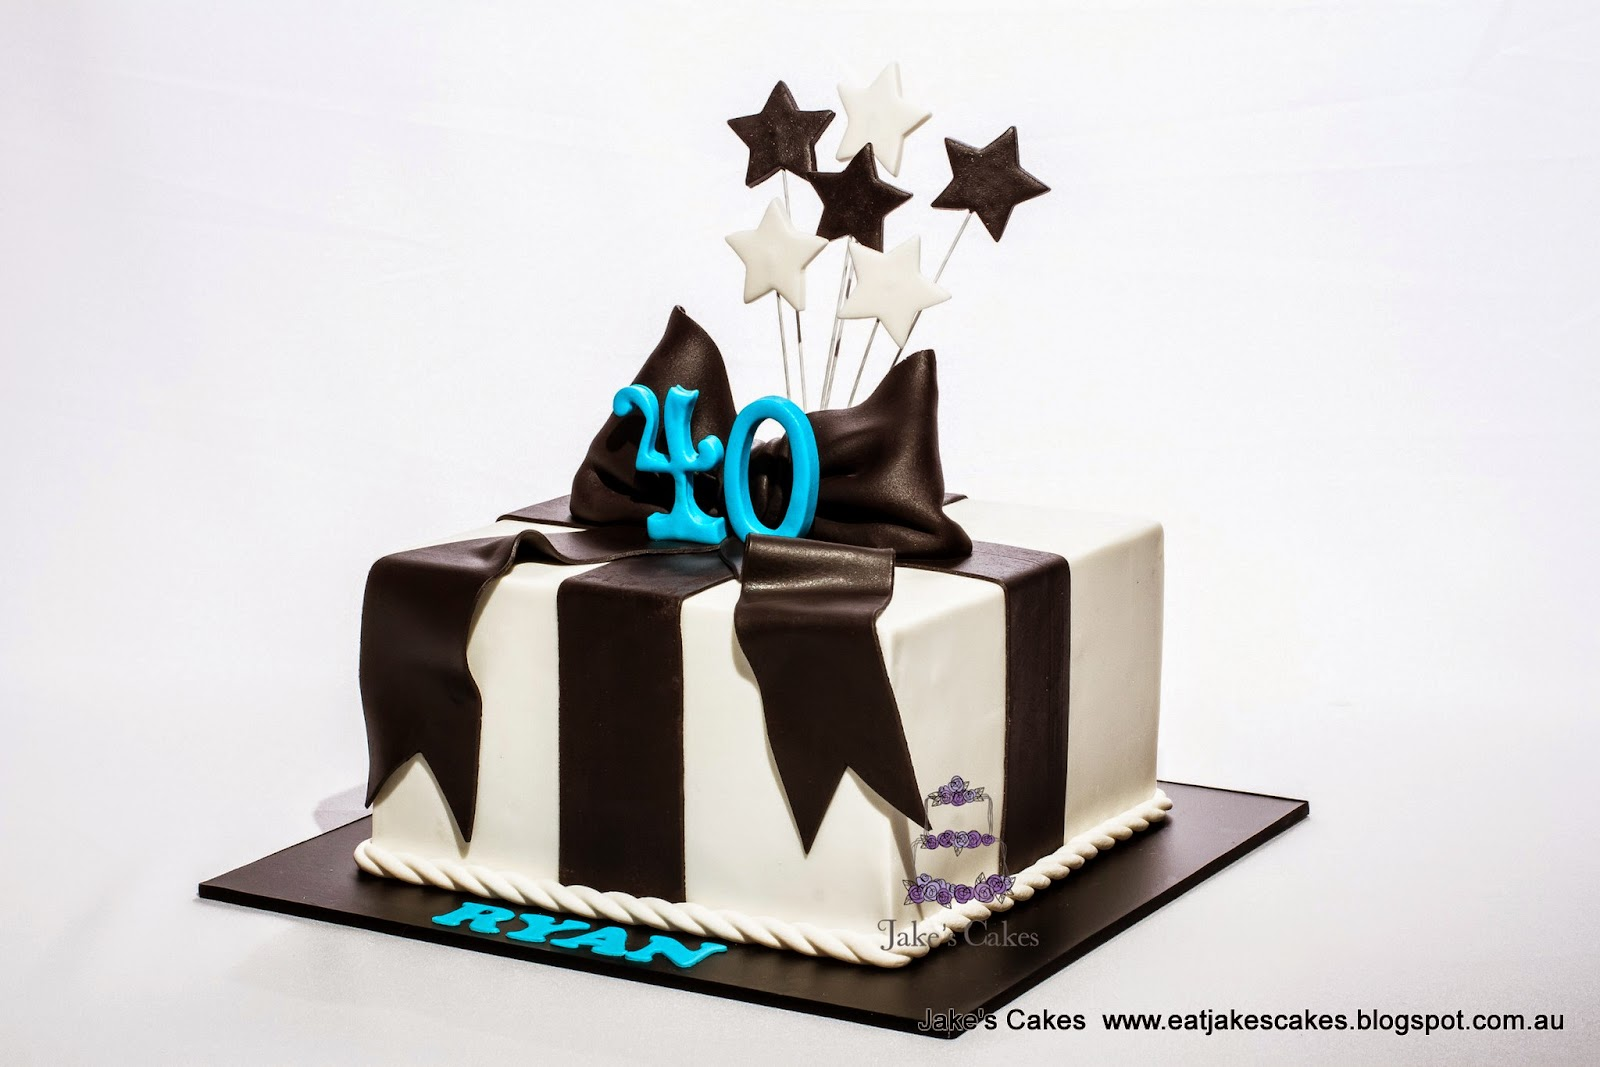 Jakes Cakes Black And White Present 40th Birthday Cake